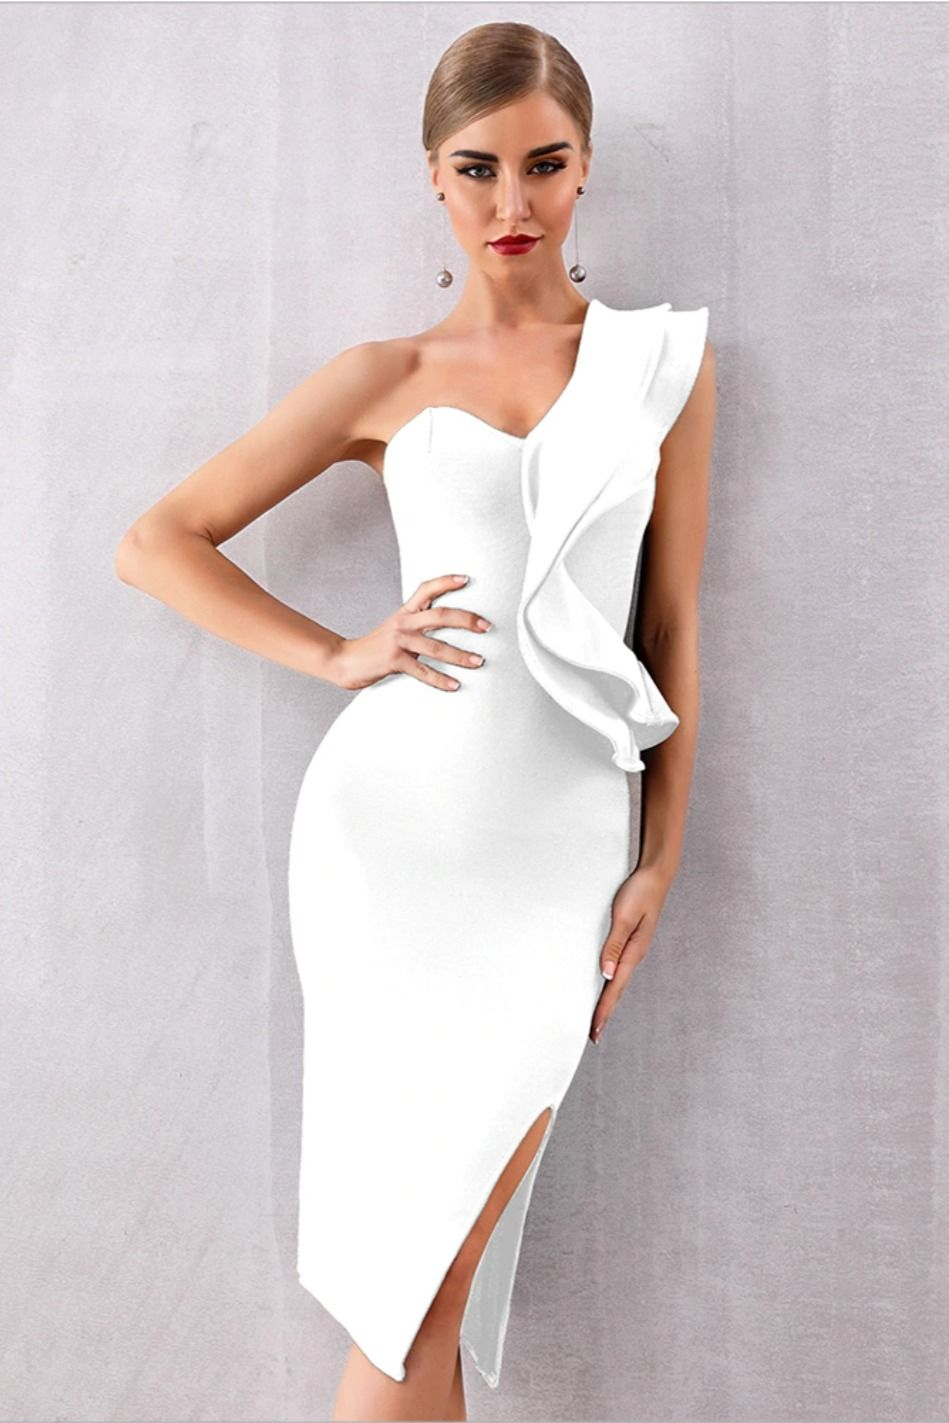 Luxurious 2019 Sexy Bandage Ruffles Bodycon Clube Dress - Club dresses, White bandage dress, Ruffle bodycon, Dresses, Evening party dress, Celebrity dresses -    SIZE CHART       CUSTOMER  REVIEWS